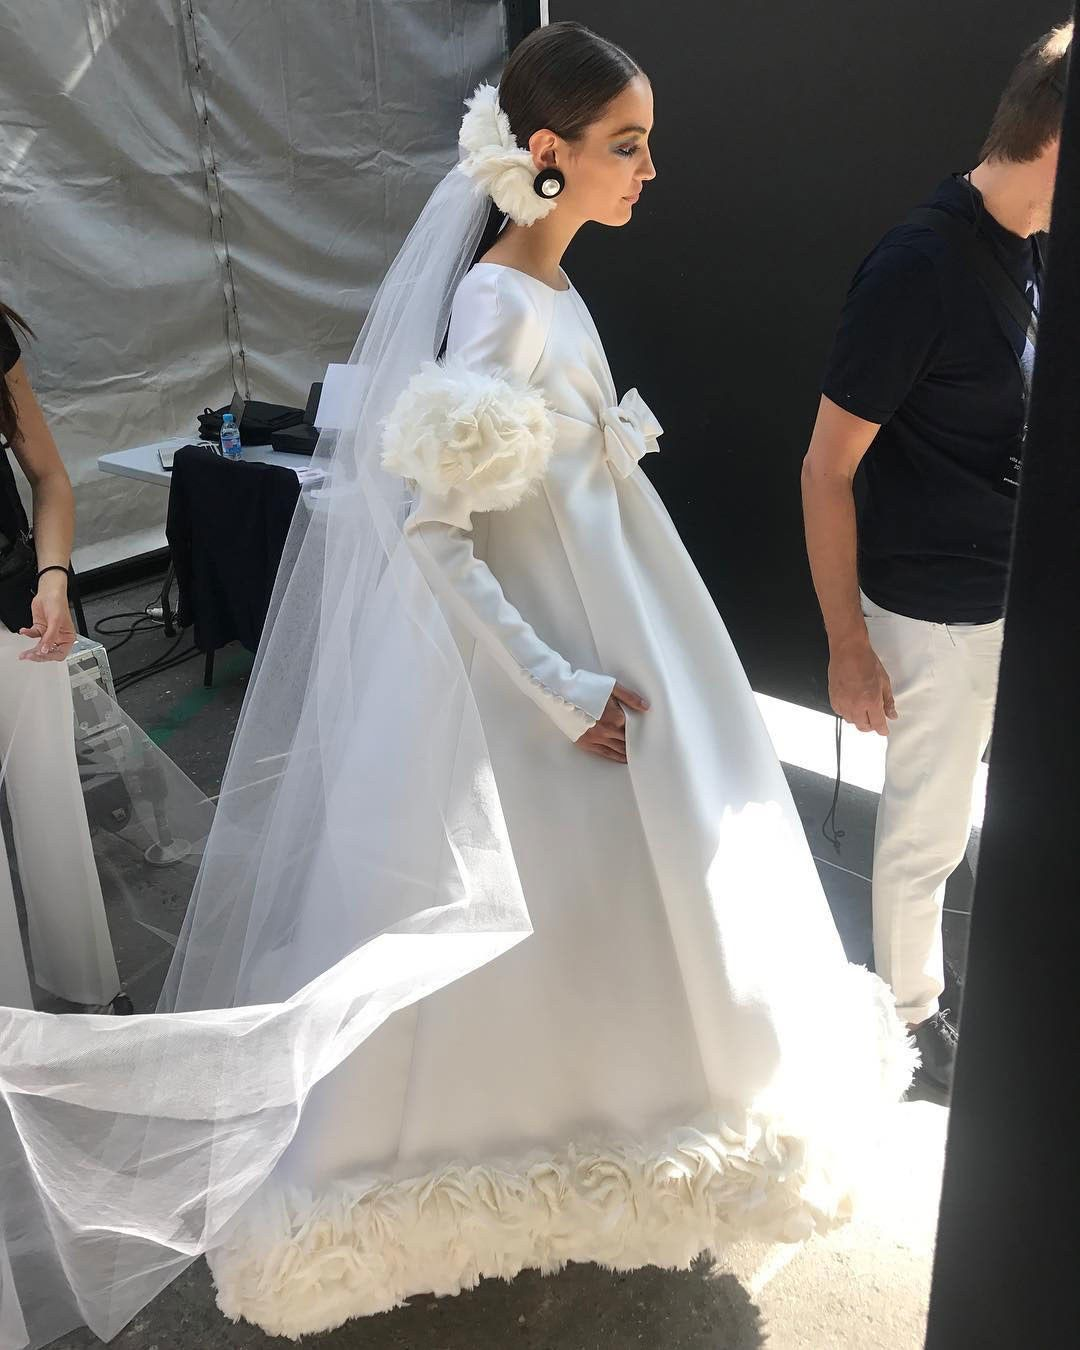 Chanel Gives The Bridal Ponytail A Magical Runway Makeover